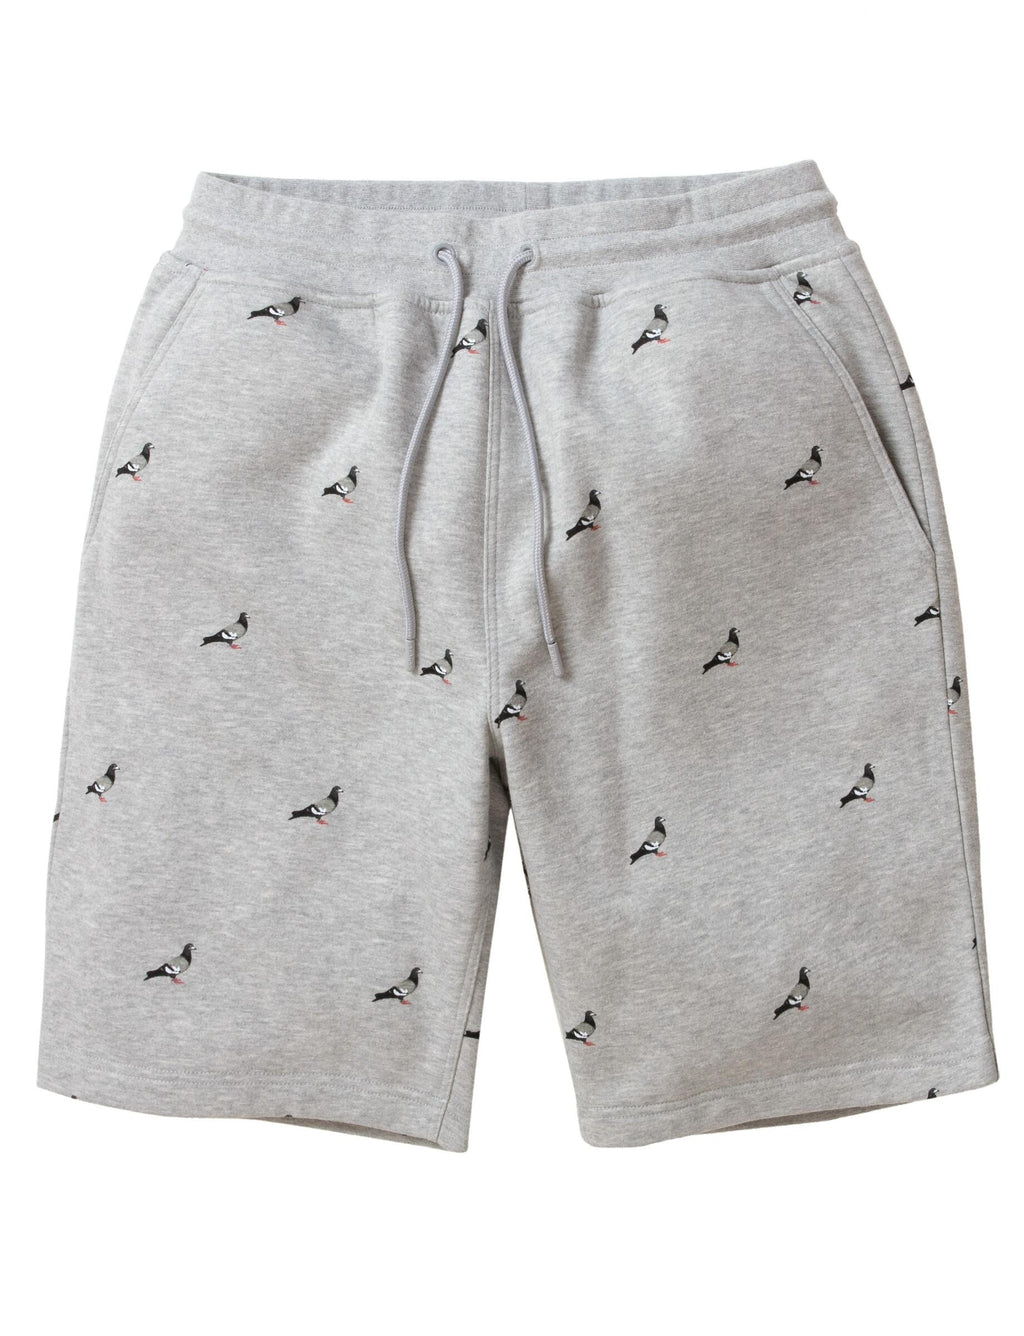 All Over Pigeon Sweatshorts - Shorts | Staple Pigeon